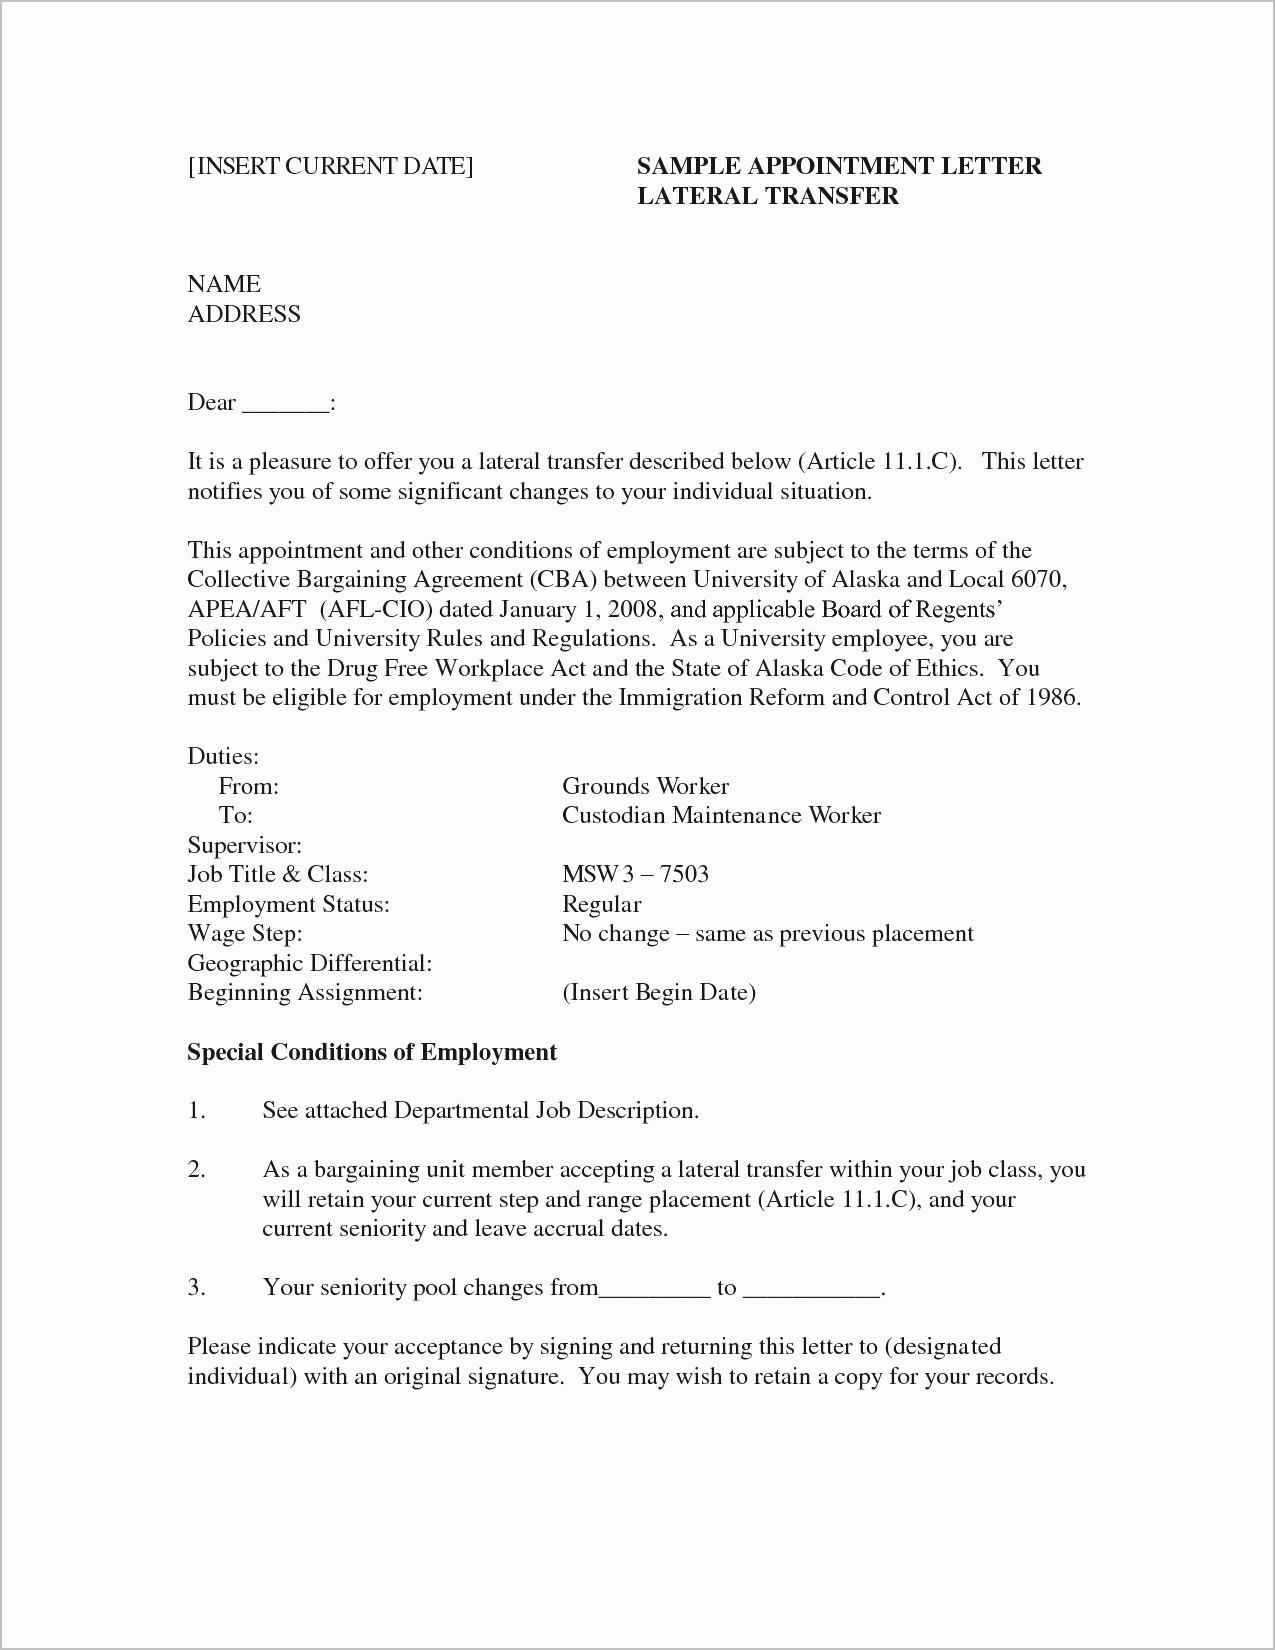 Phlebotomist Resume Template - Phlebotomist Resume Examples Inspirational Phlebotomy Resume Cover